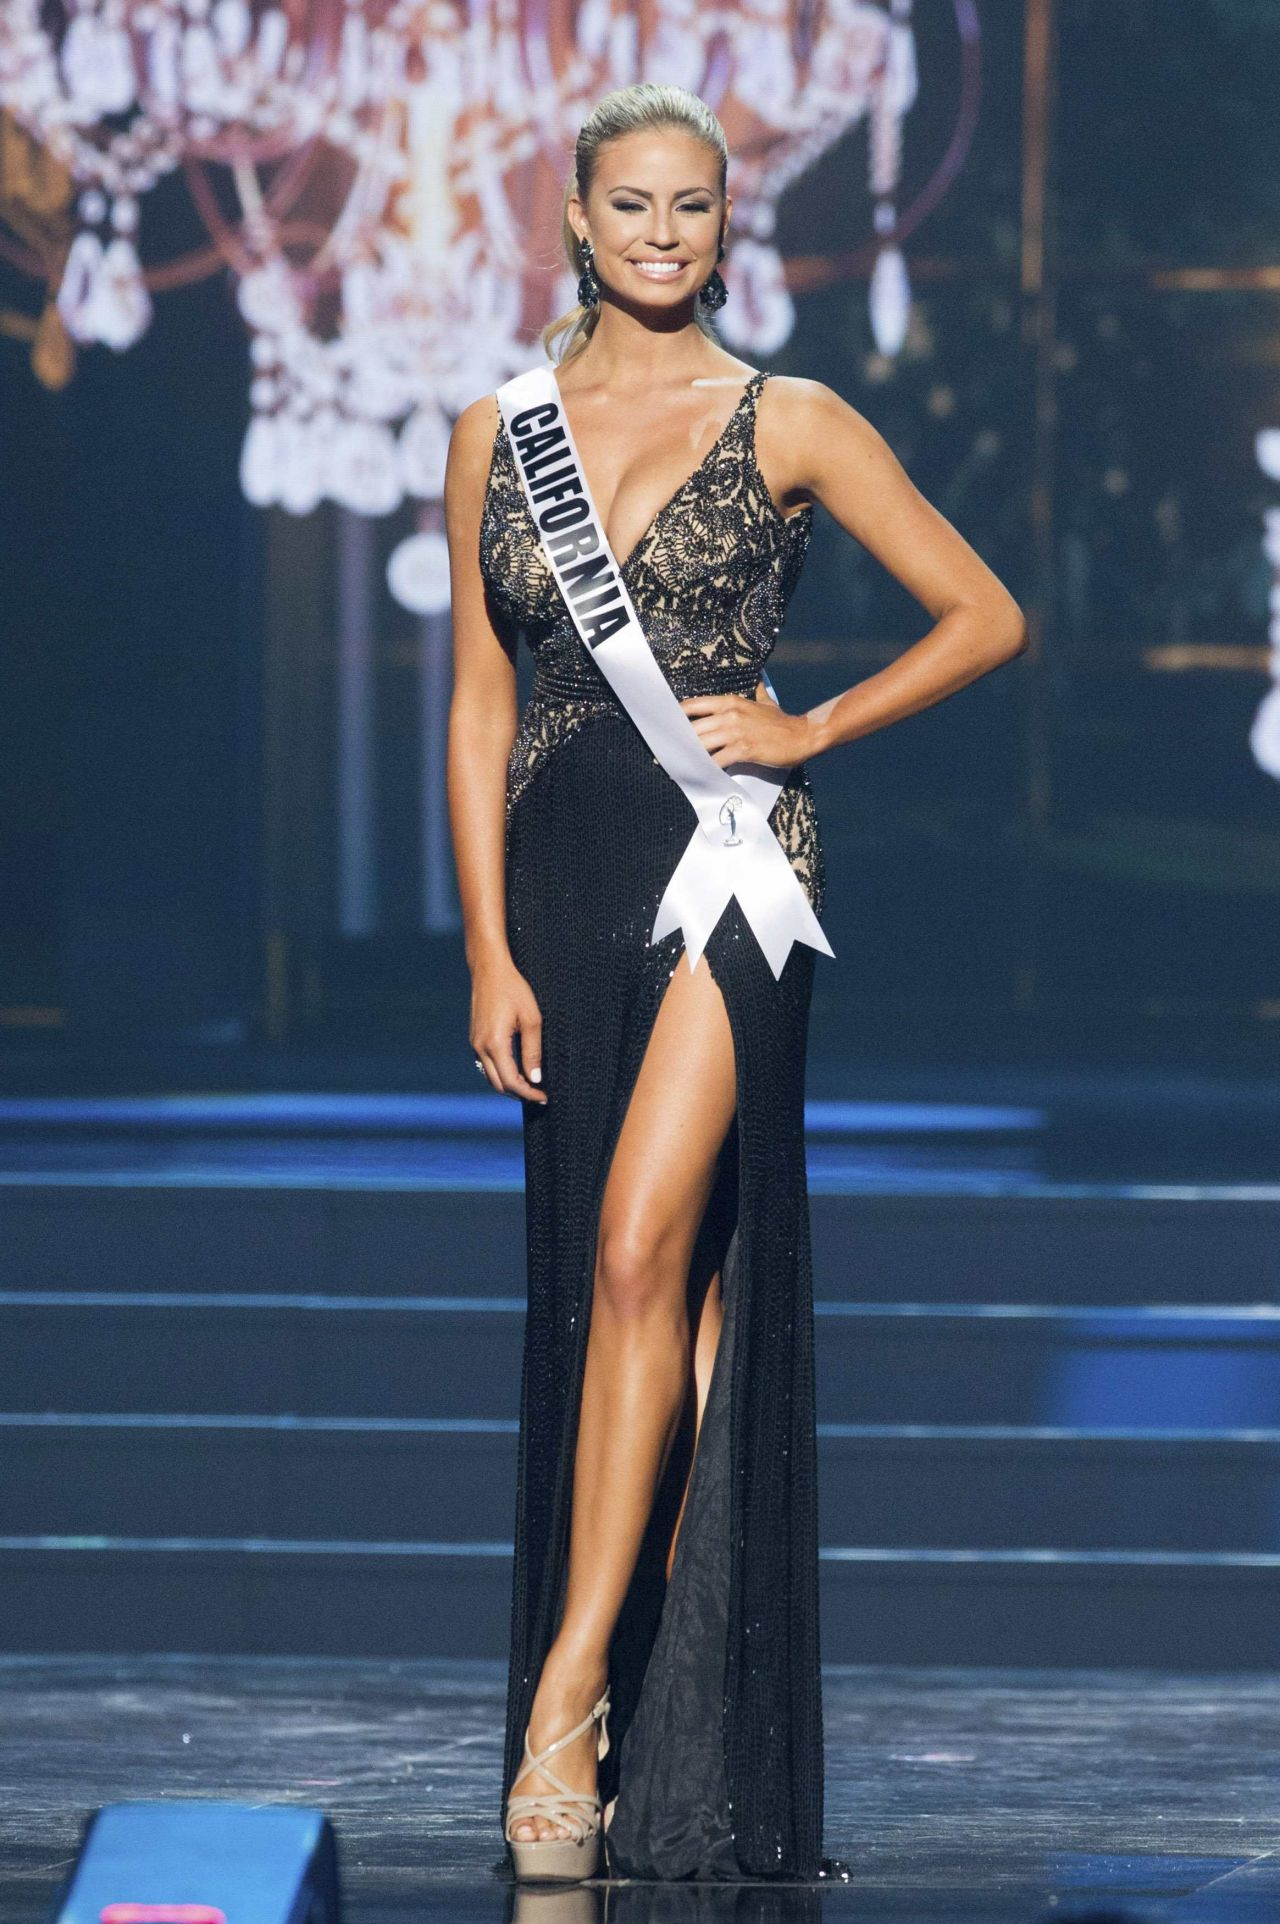 Cassandra Kunze (California) - Miss USA Preliminary Competition - June 2014